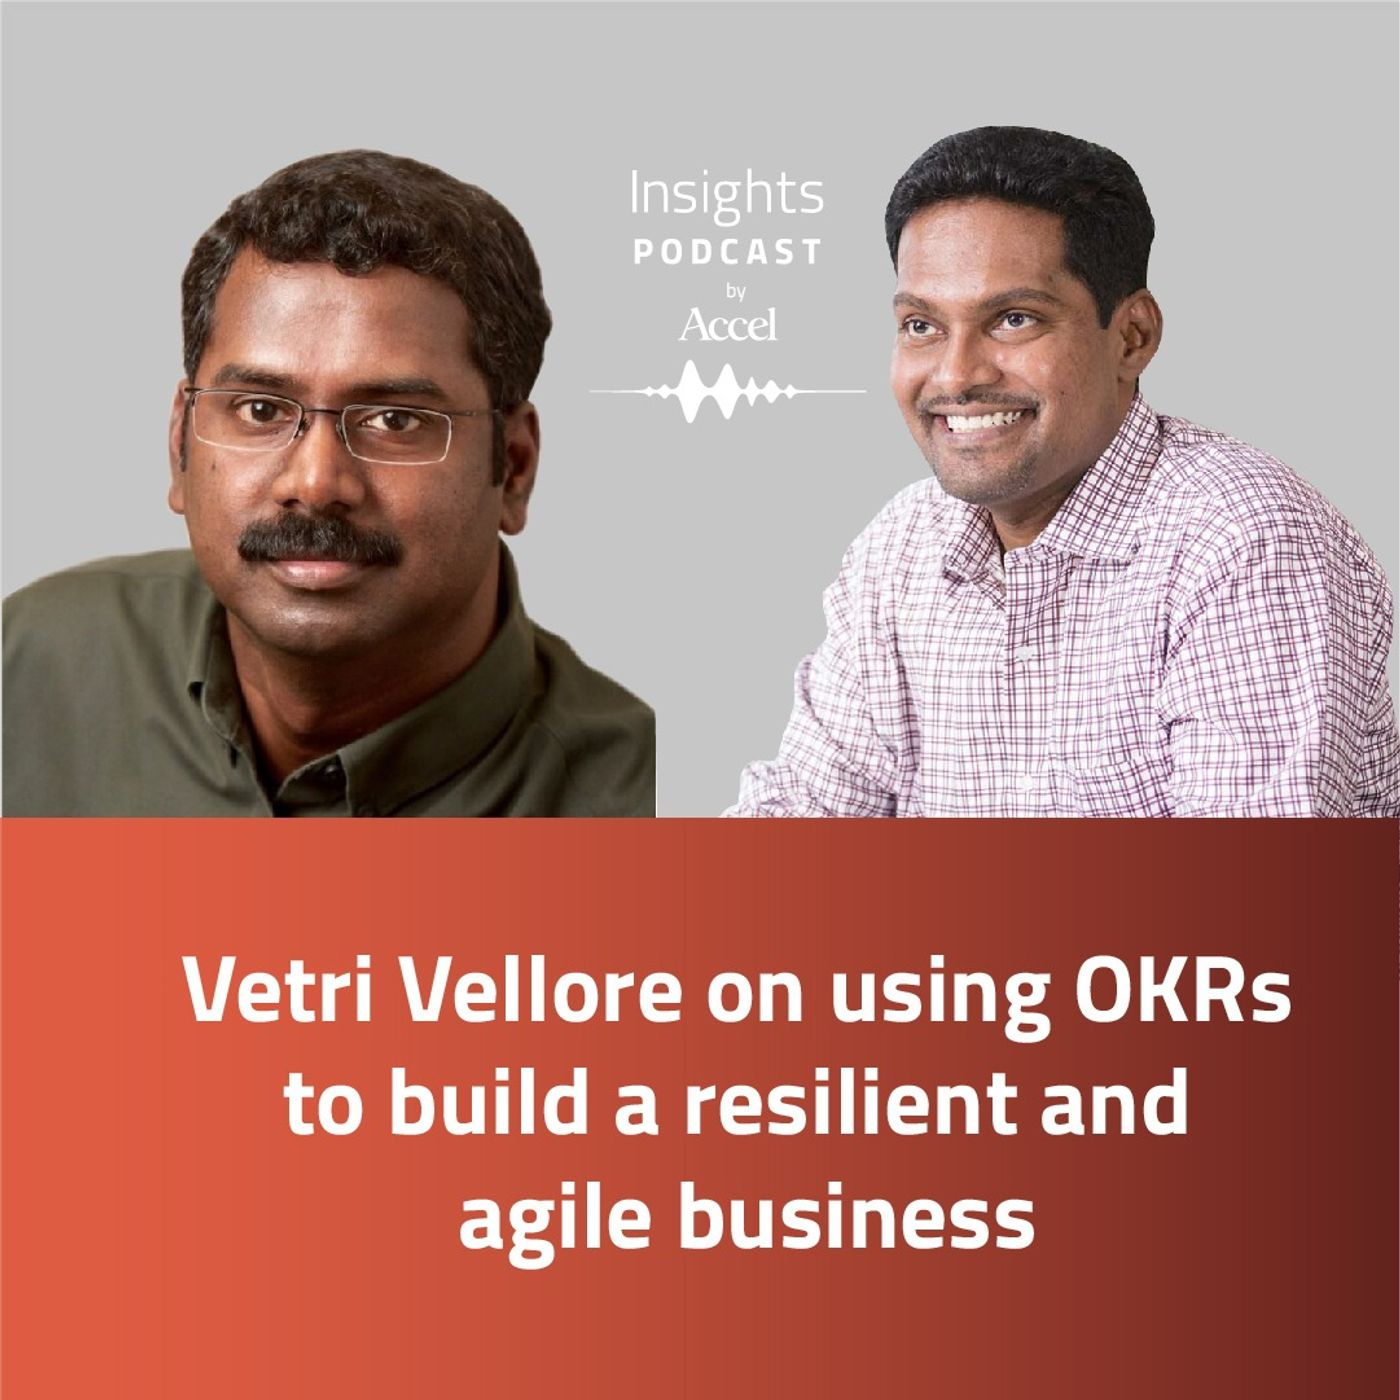 INSIGHTS #55 – Vetri Vellore on using OKRs to build a resilient and agile business